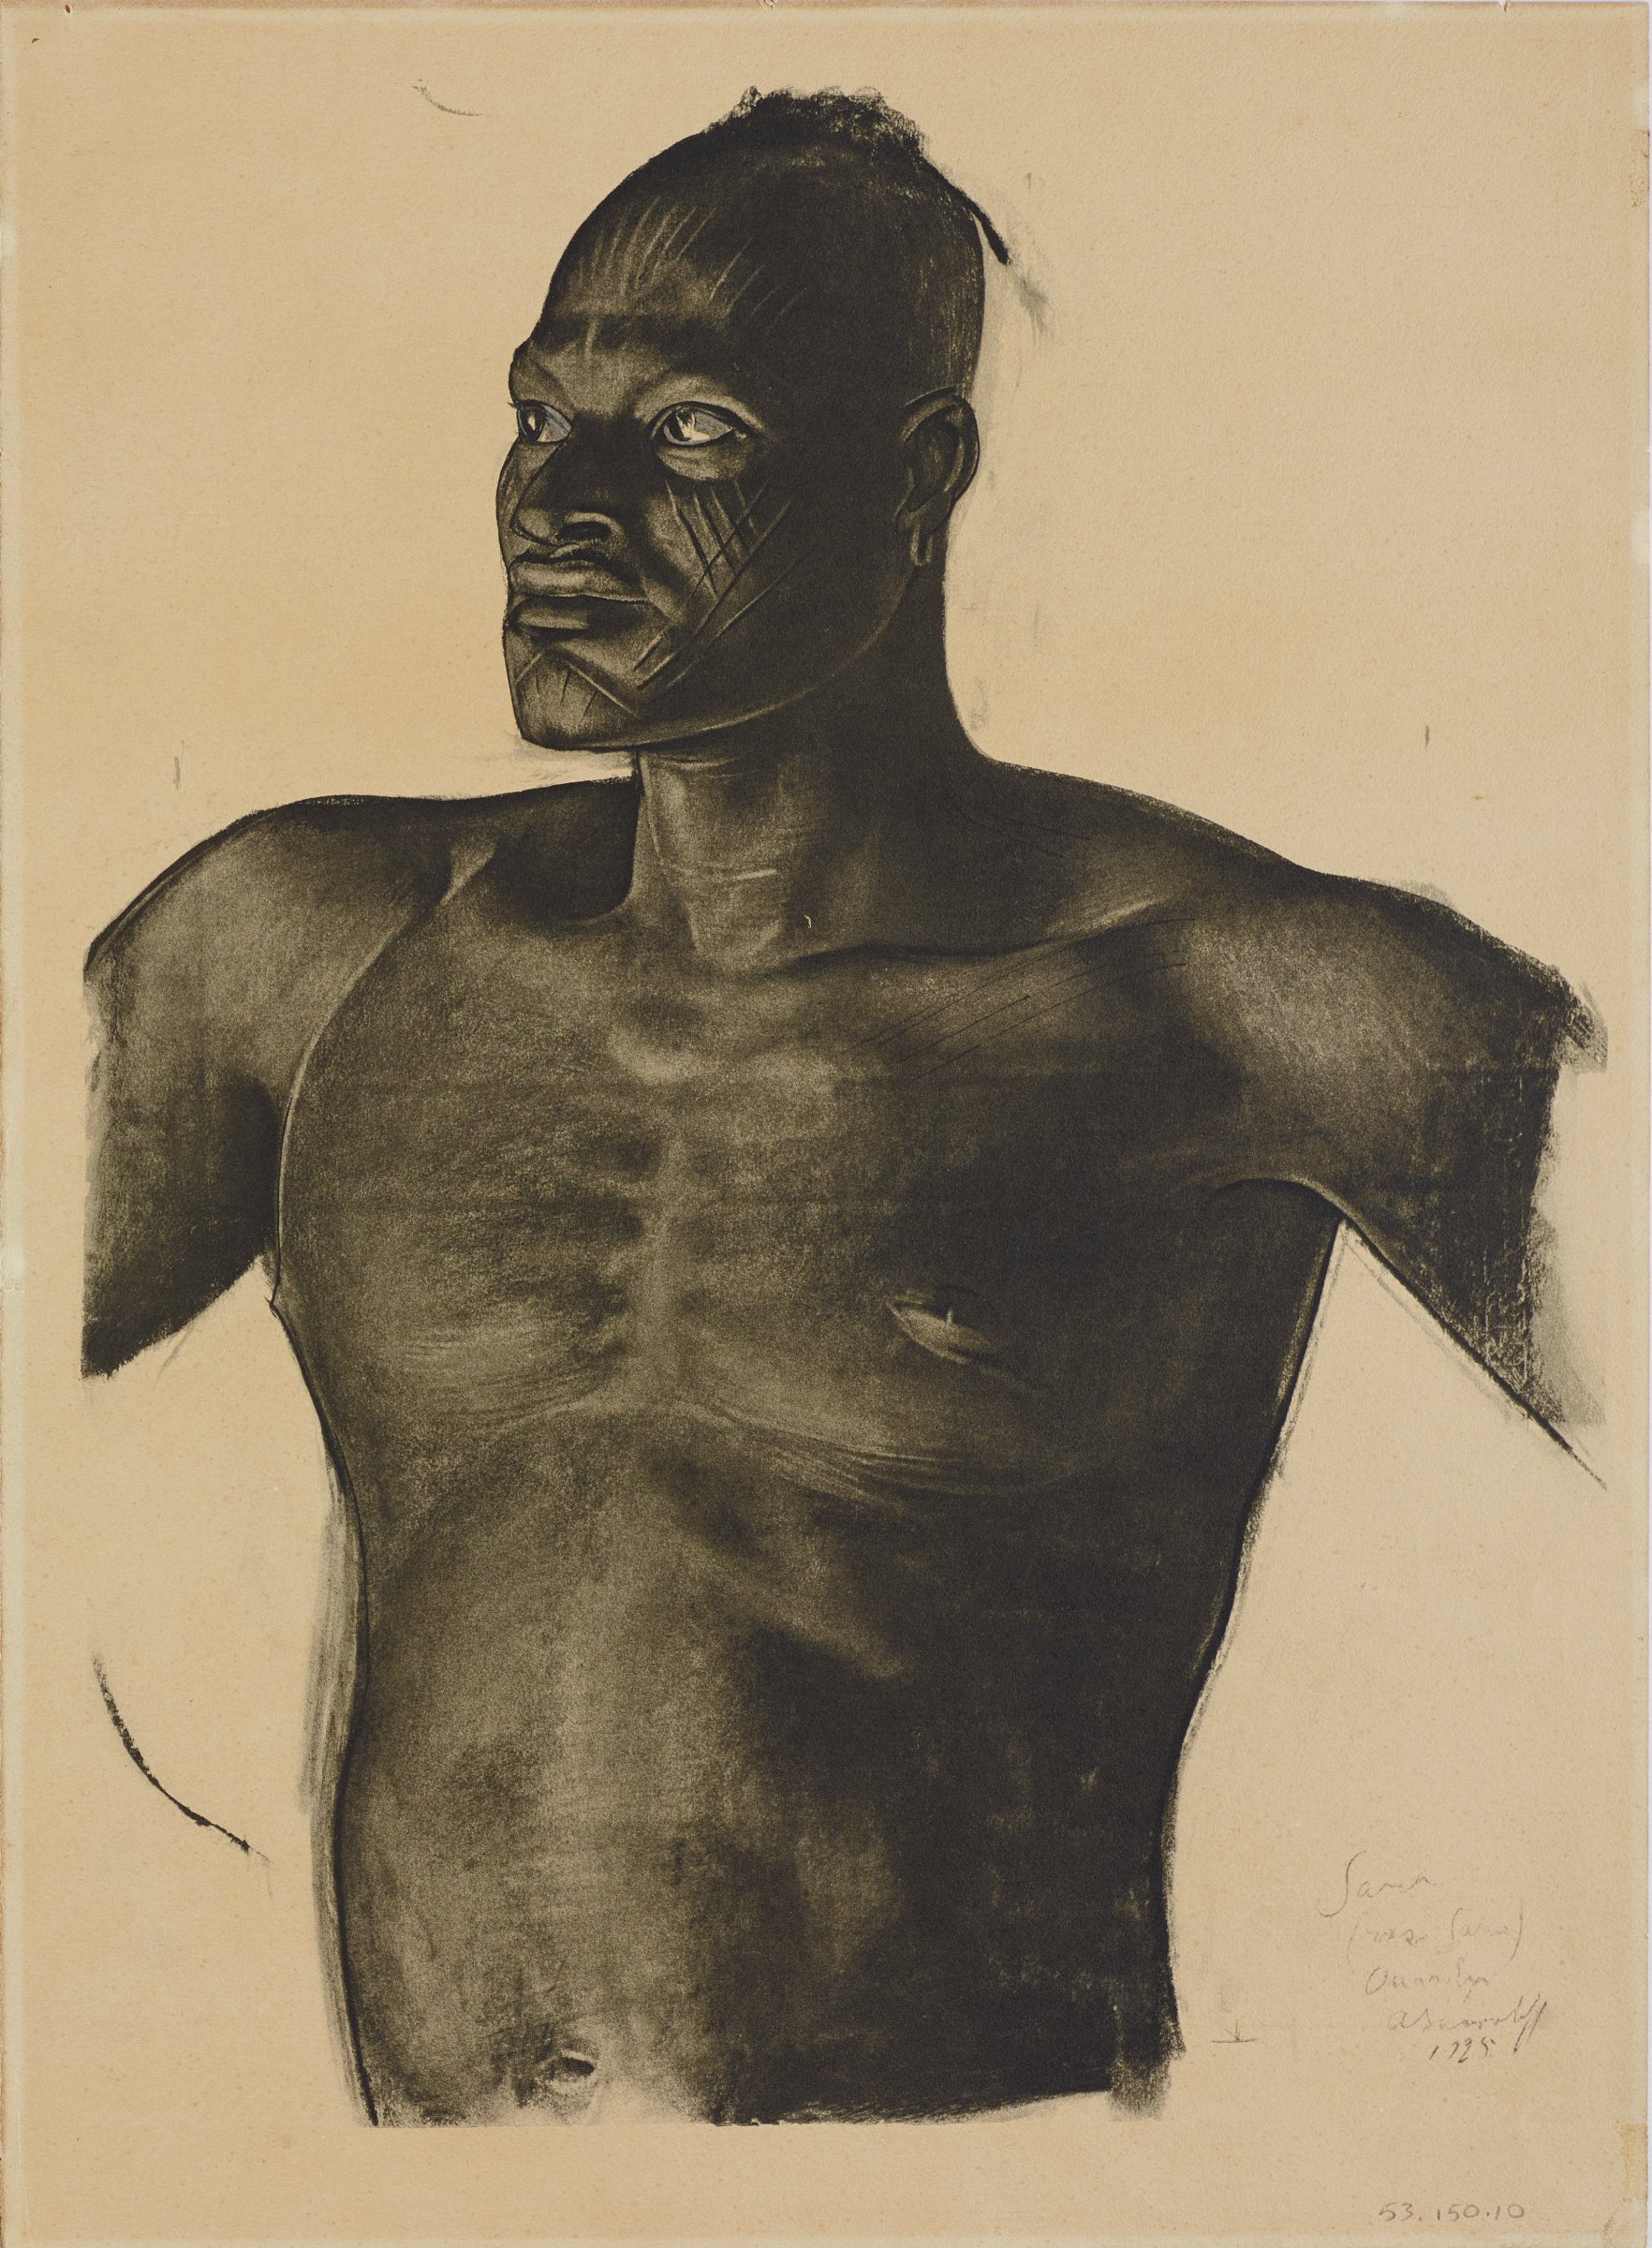 Half length portrait of a male figure. He faces slightly to the left. His head is partially shaved, and multiple markings appear on his face. This series is a product of Jacovleff's involvement in the Expédition Citroën Centre-Afrique.